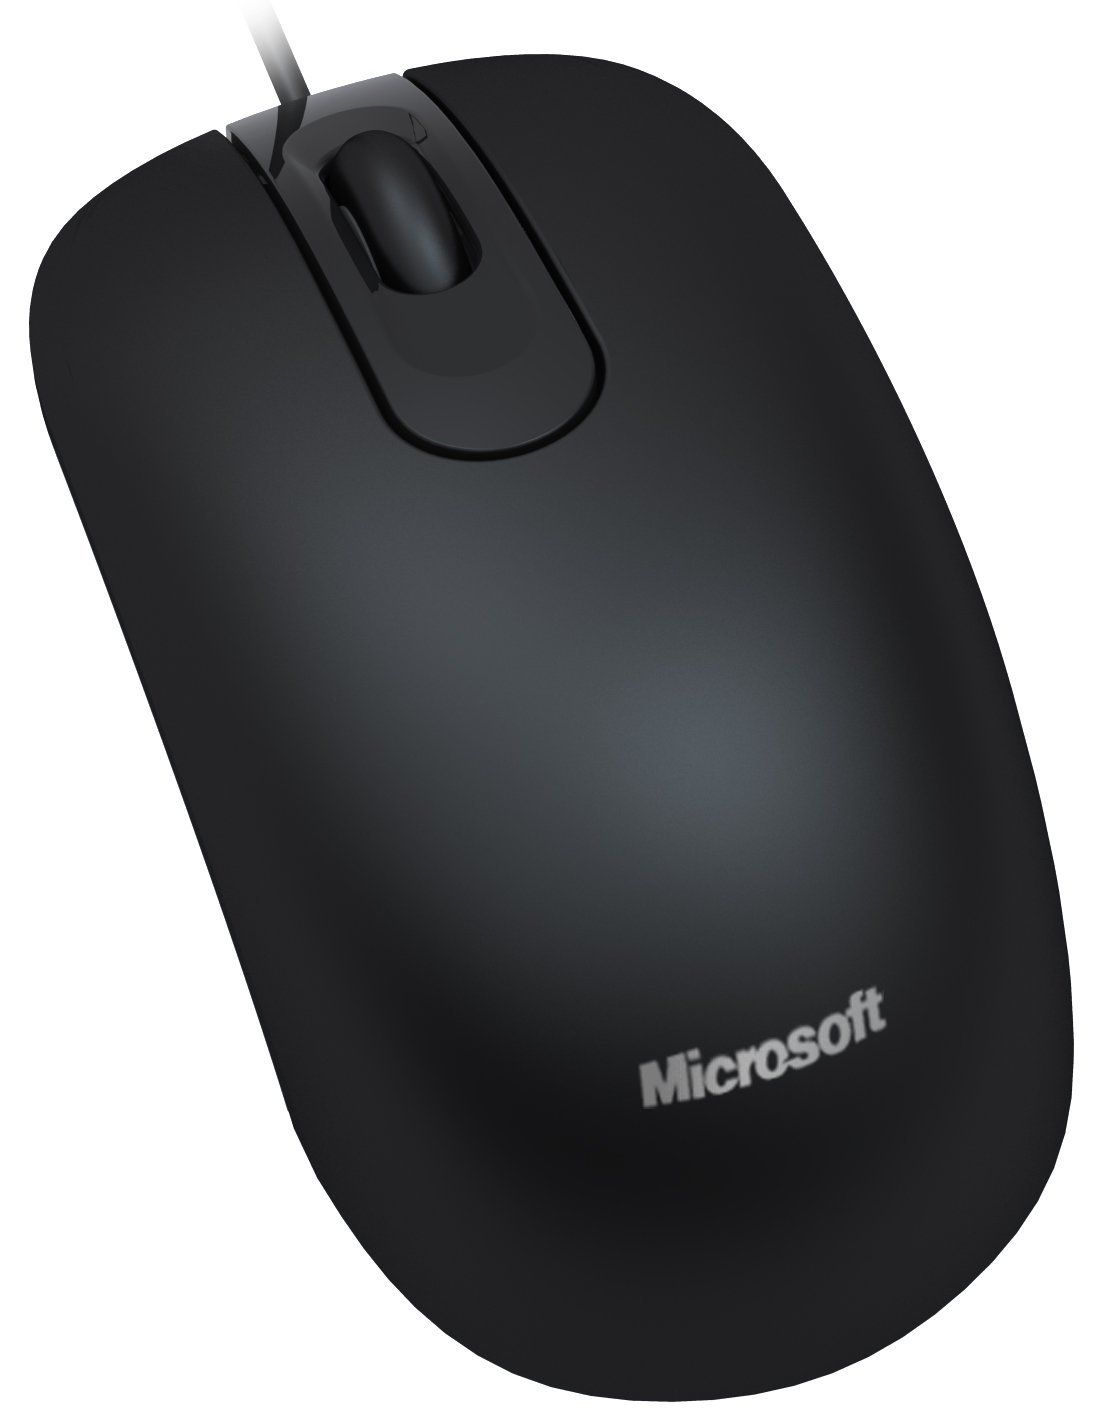 Mouse USB  Mse 200/400 Microsoft